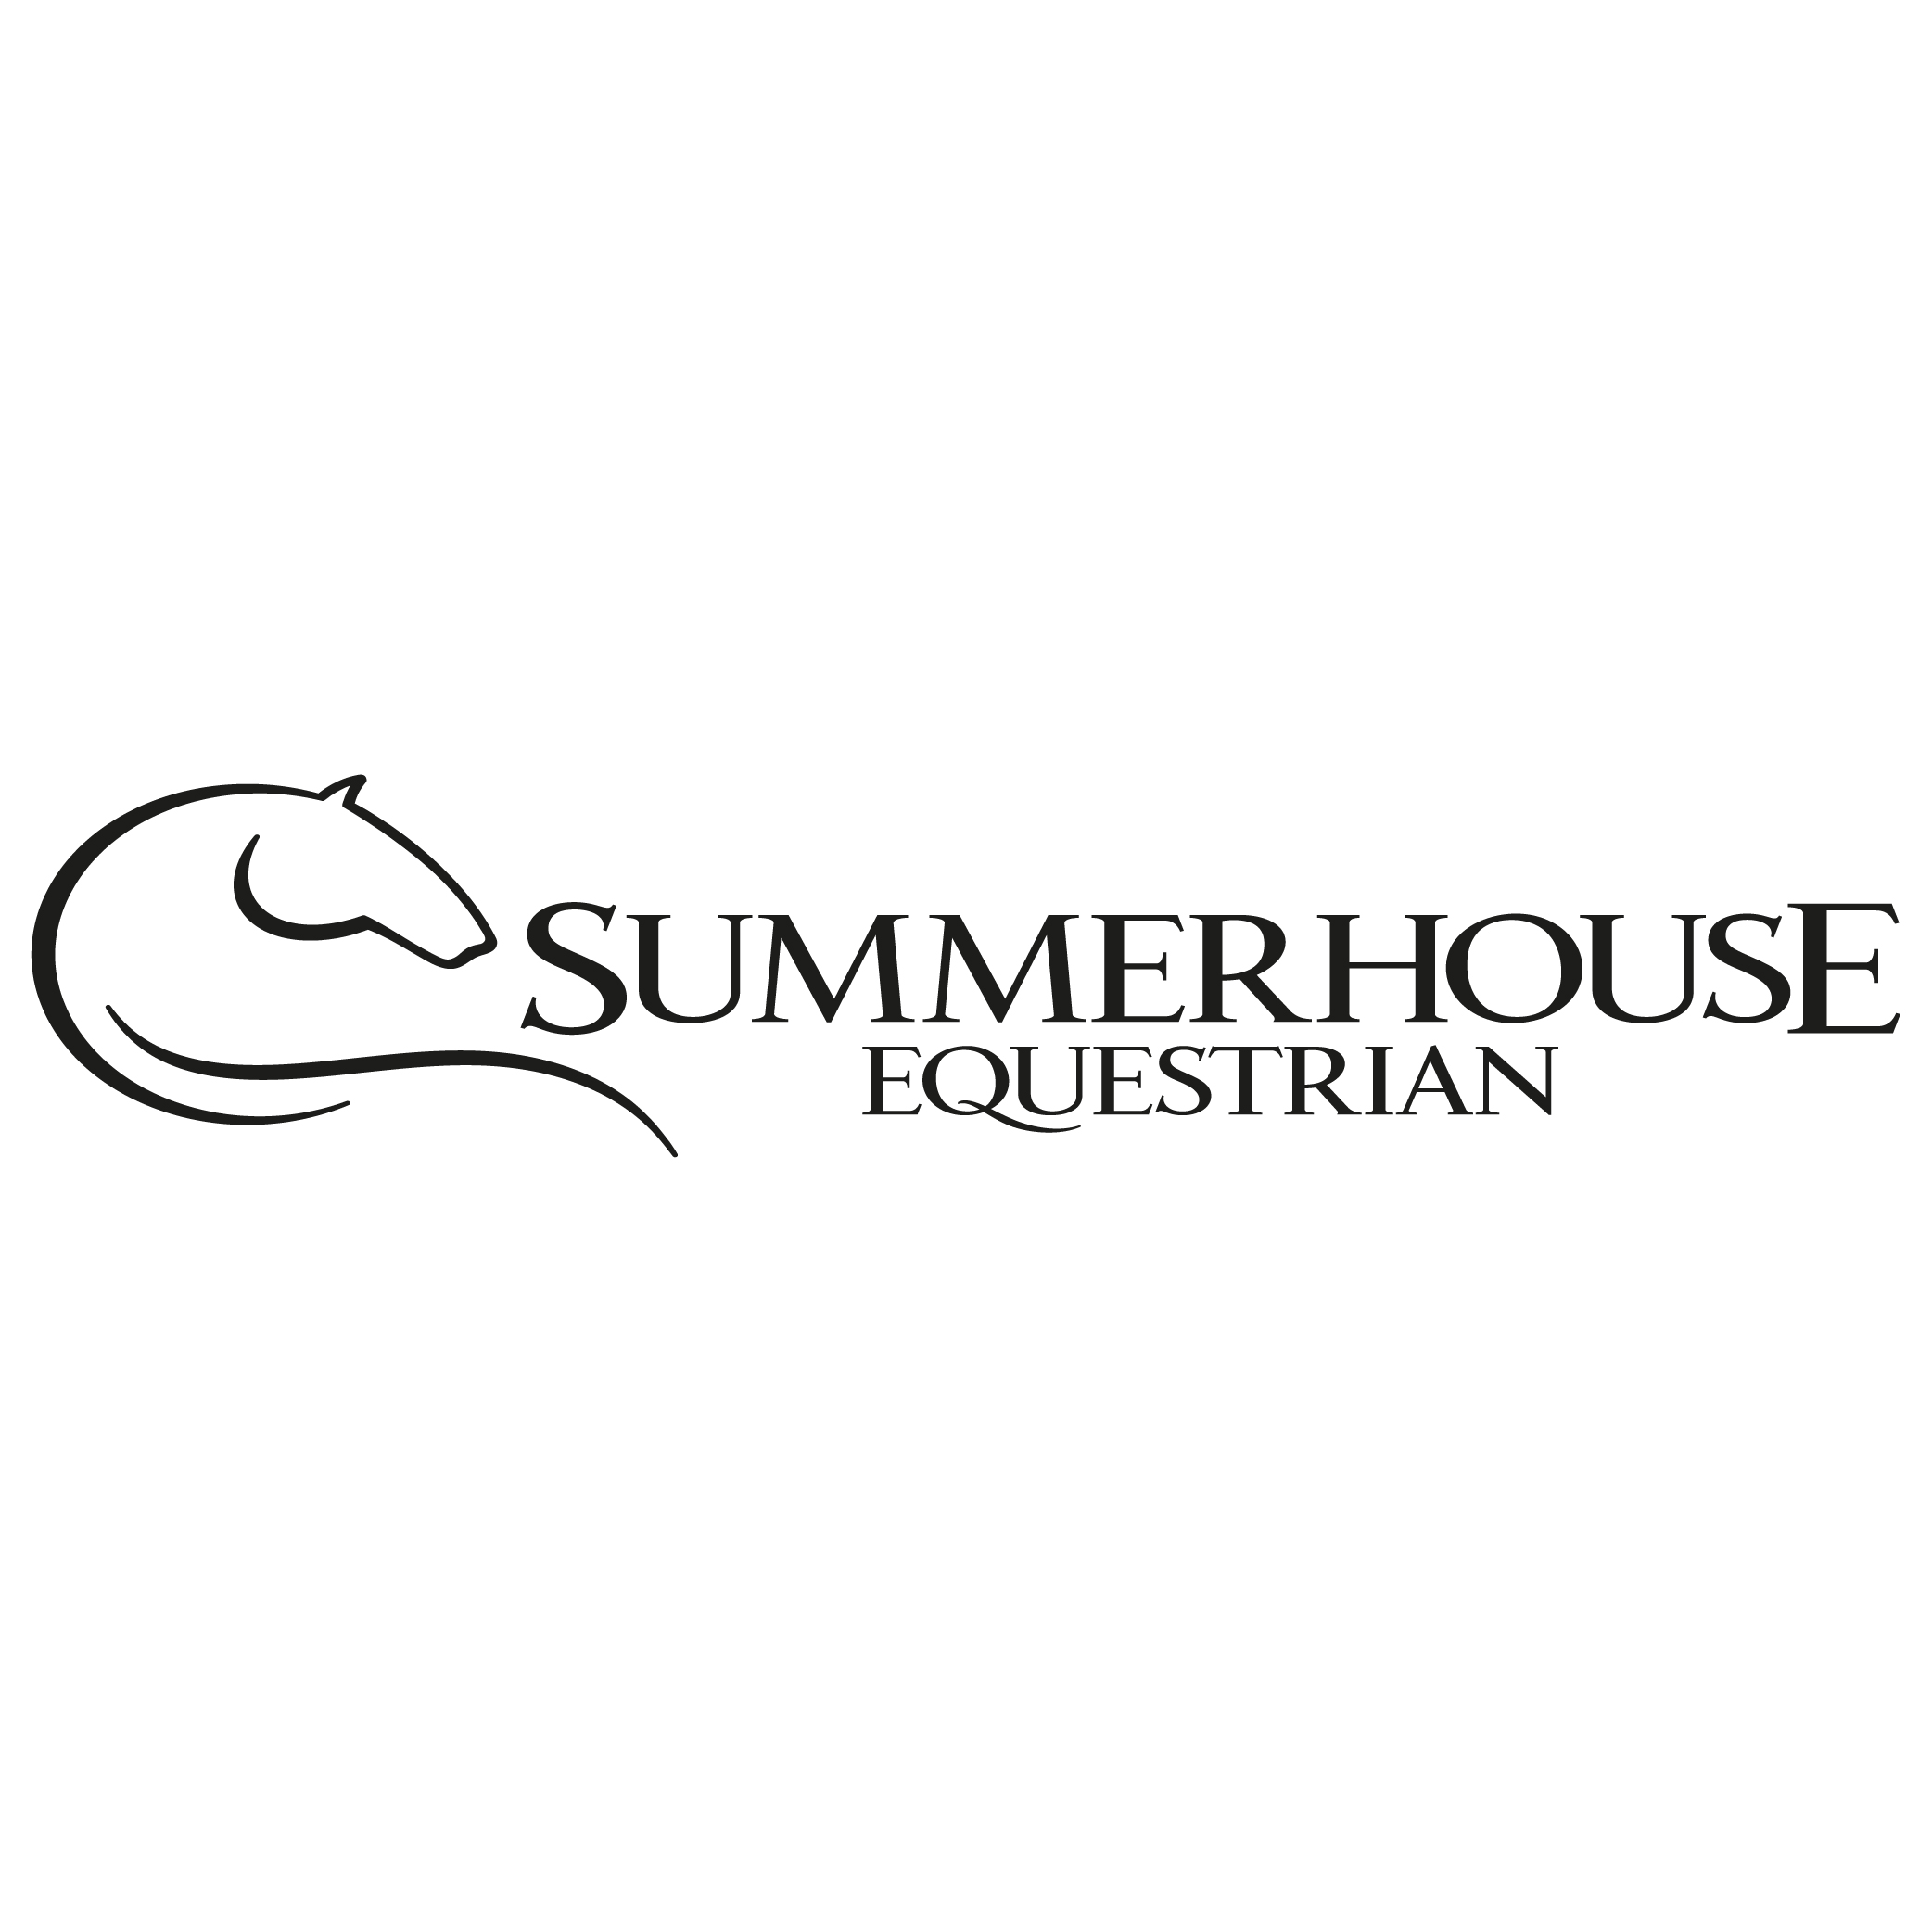 This is an image showing Summerhouse Equestrian Centres logo